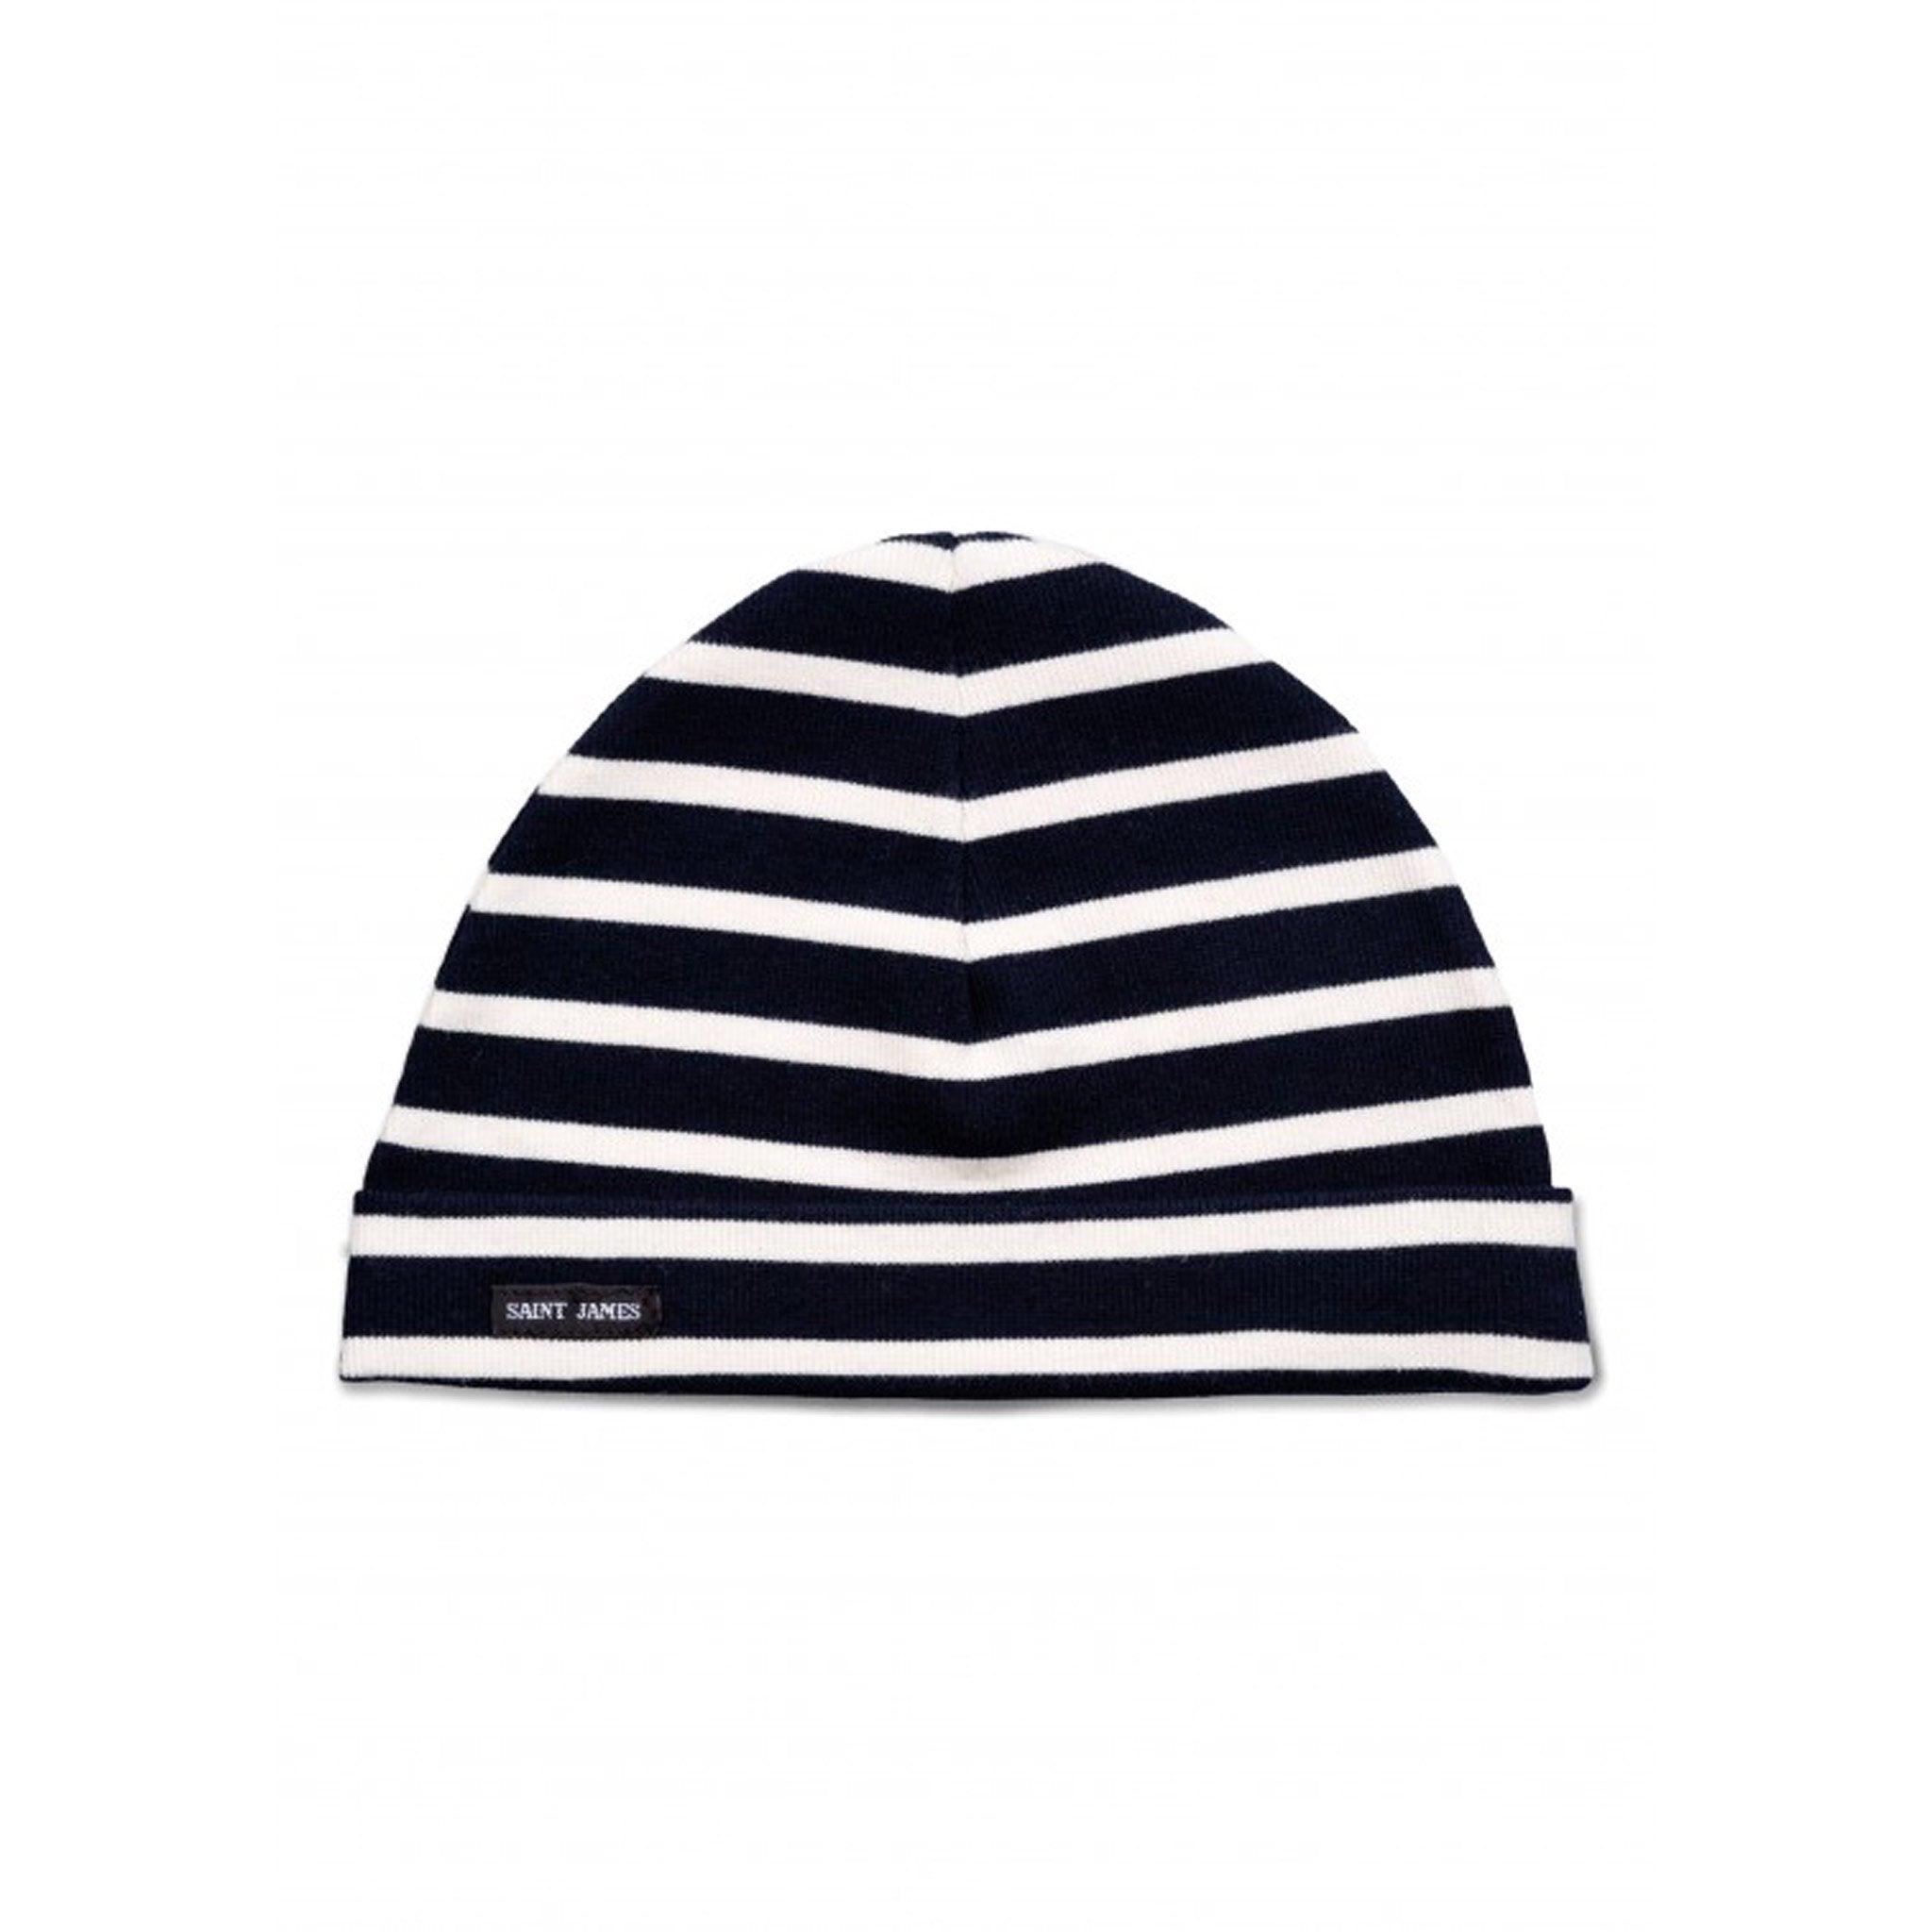 Saint James Childrens' Surcouf Striped Beanie - Arthur Beale